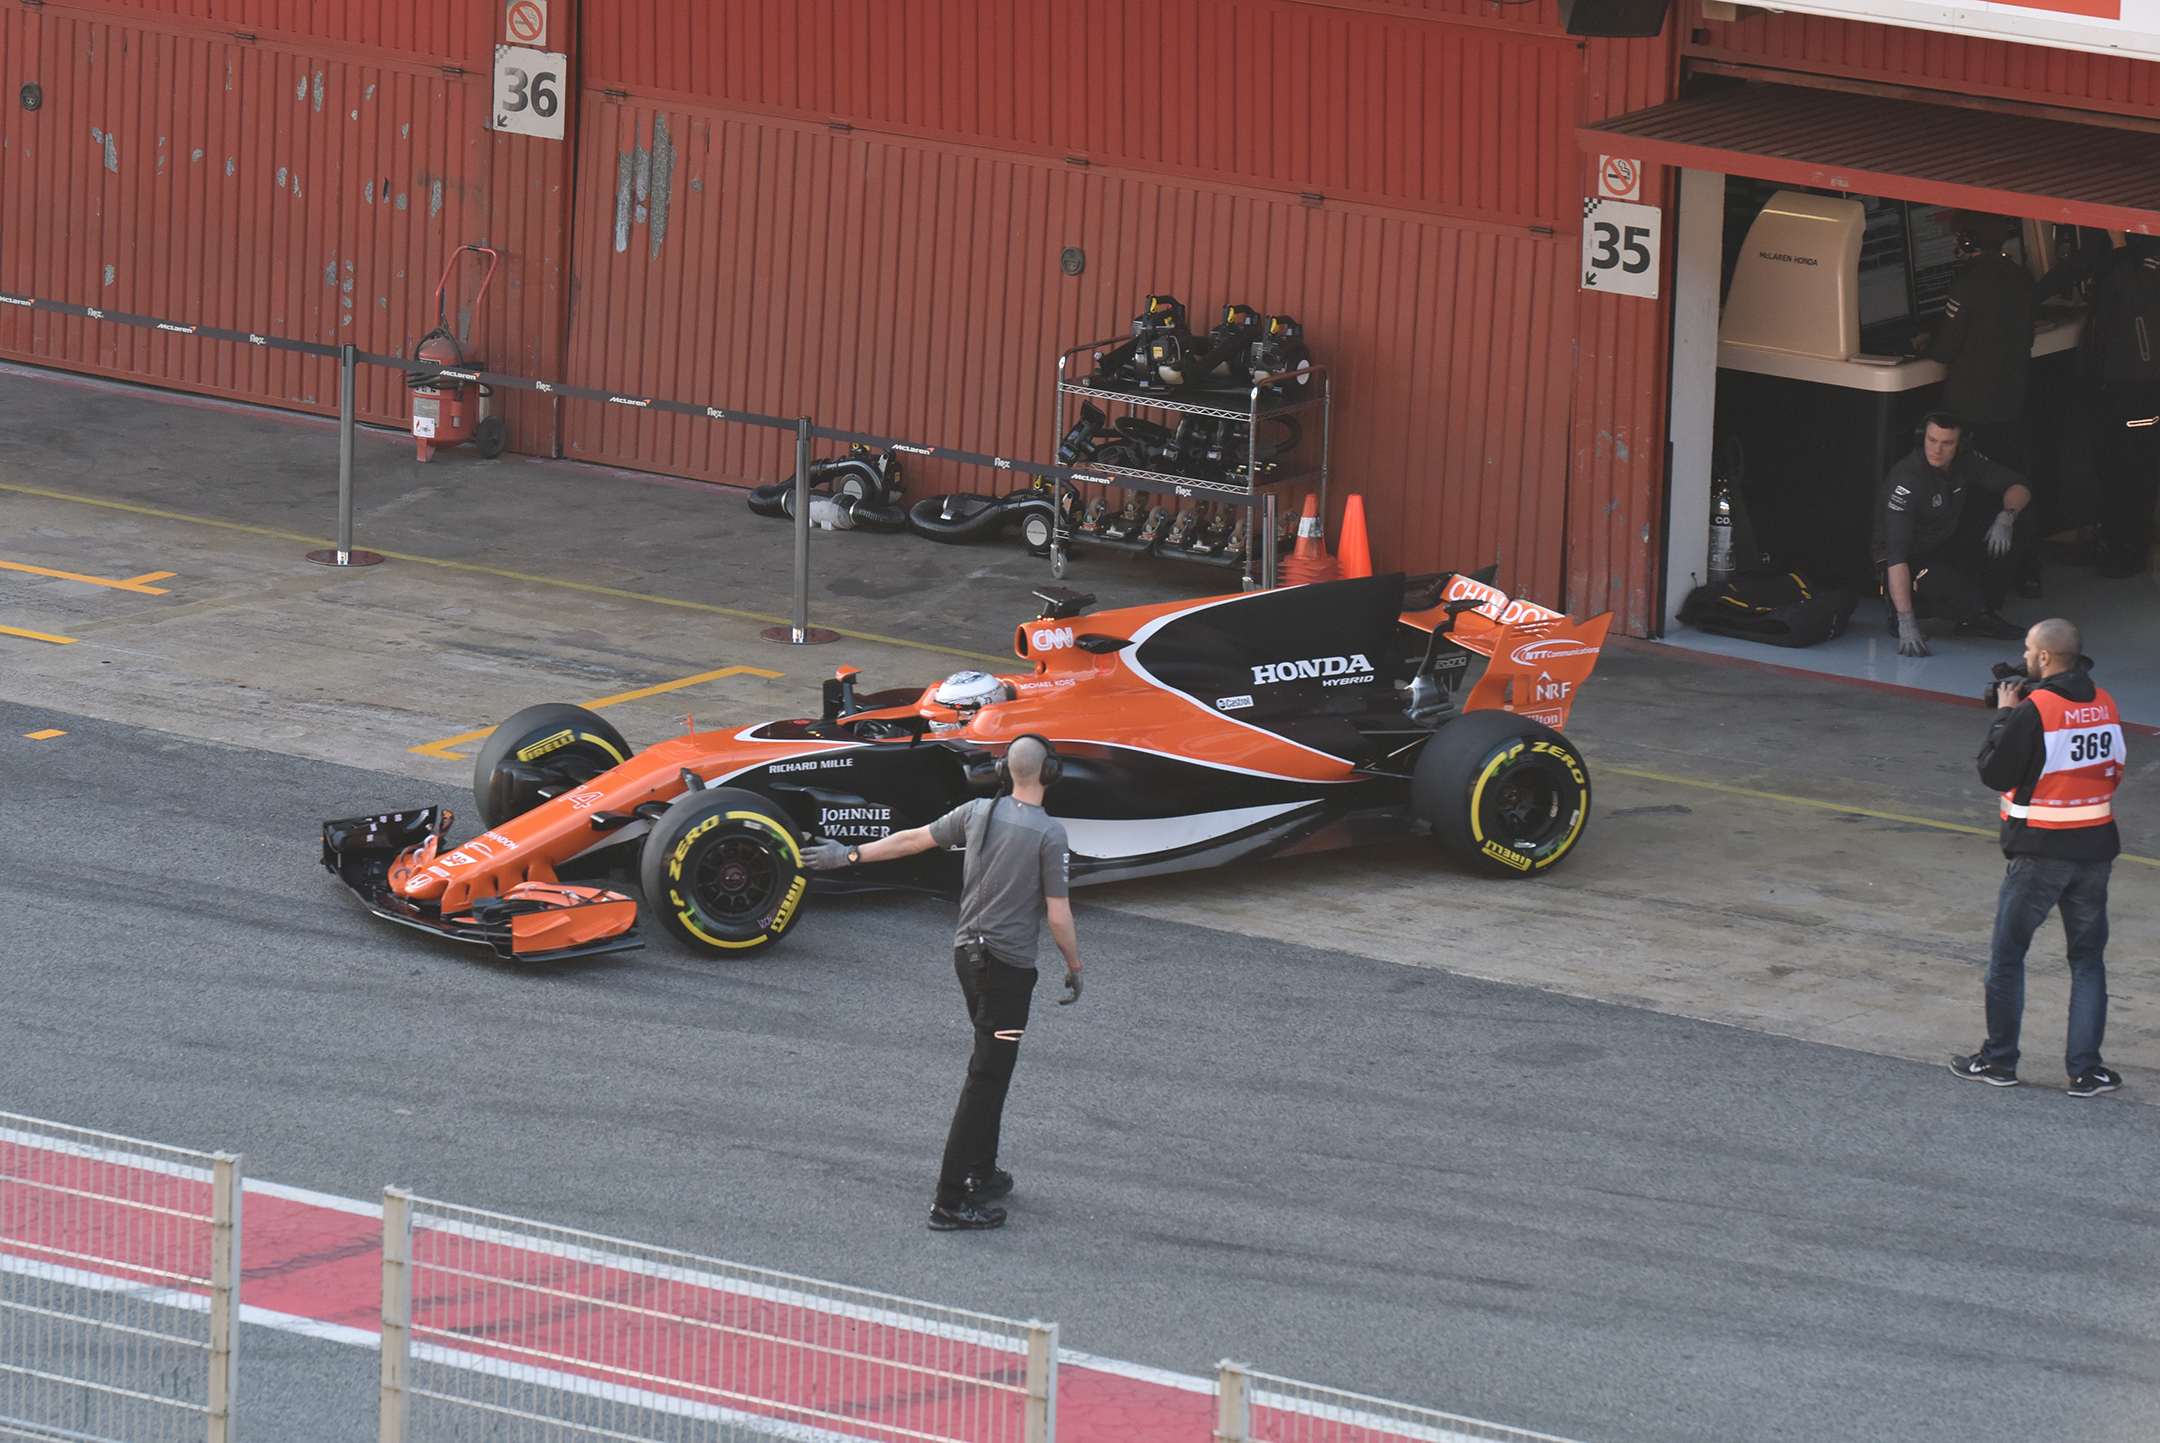 F1 Testday start - 2017 - McLaren-Honda MCL32 - photo by Jacques Denis - Team DESIGNMOTEUR